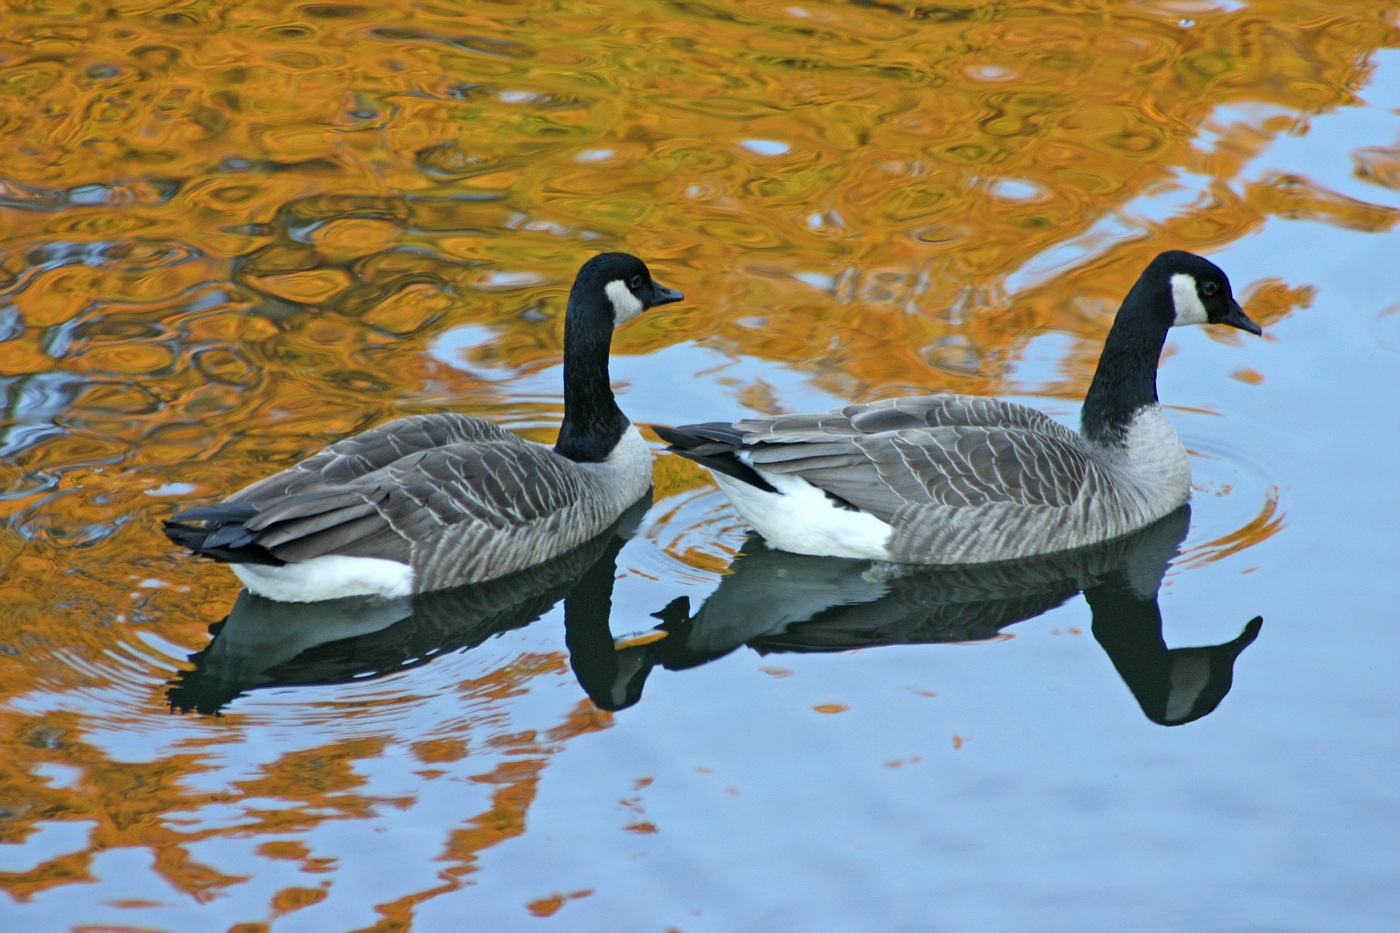 Geese on Golden Pond